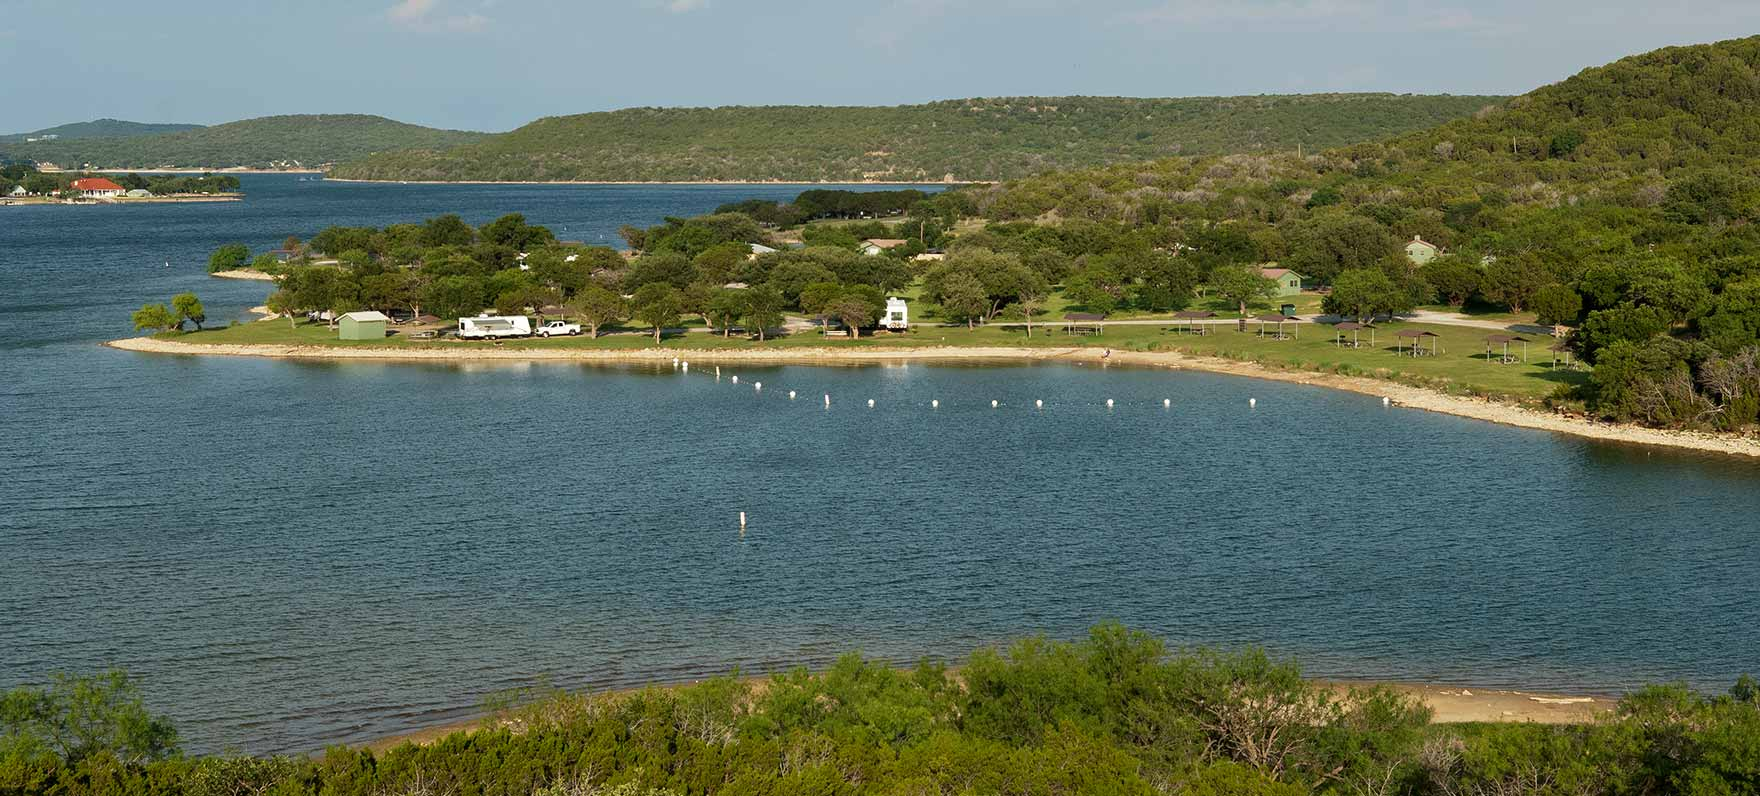 Located in the rugged canyon country of the Brazos River Valley, Lake Possum Kingdom offers some of the clearest, bluest water in the southwest.